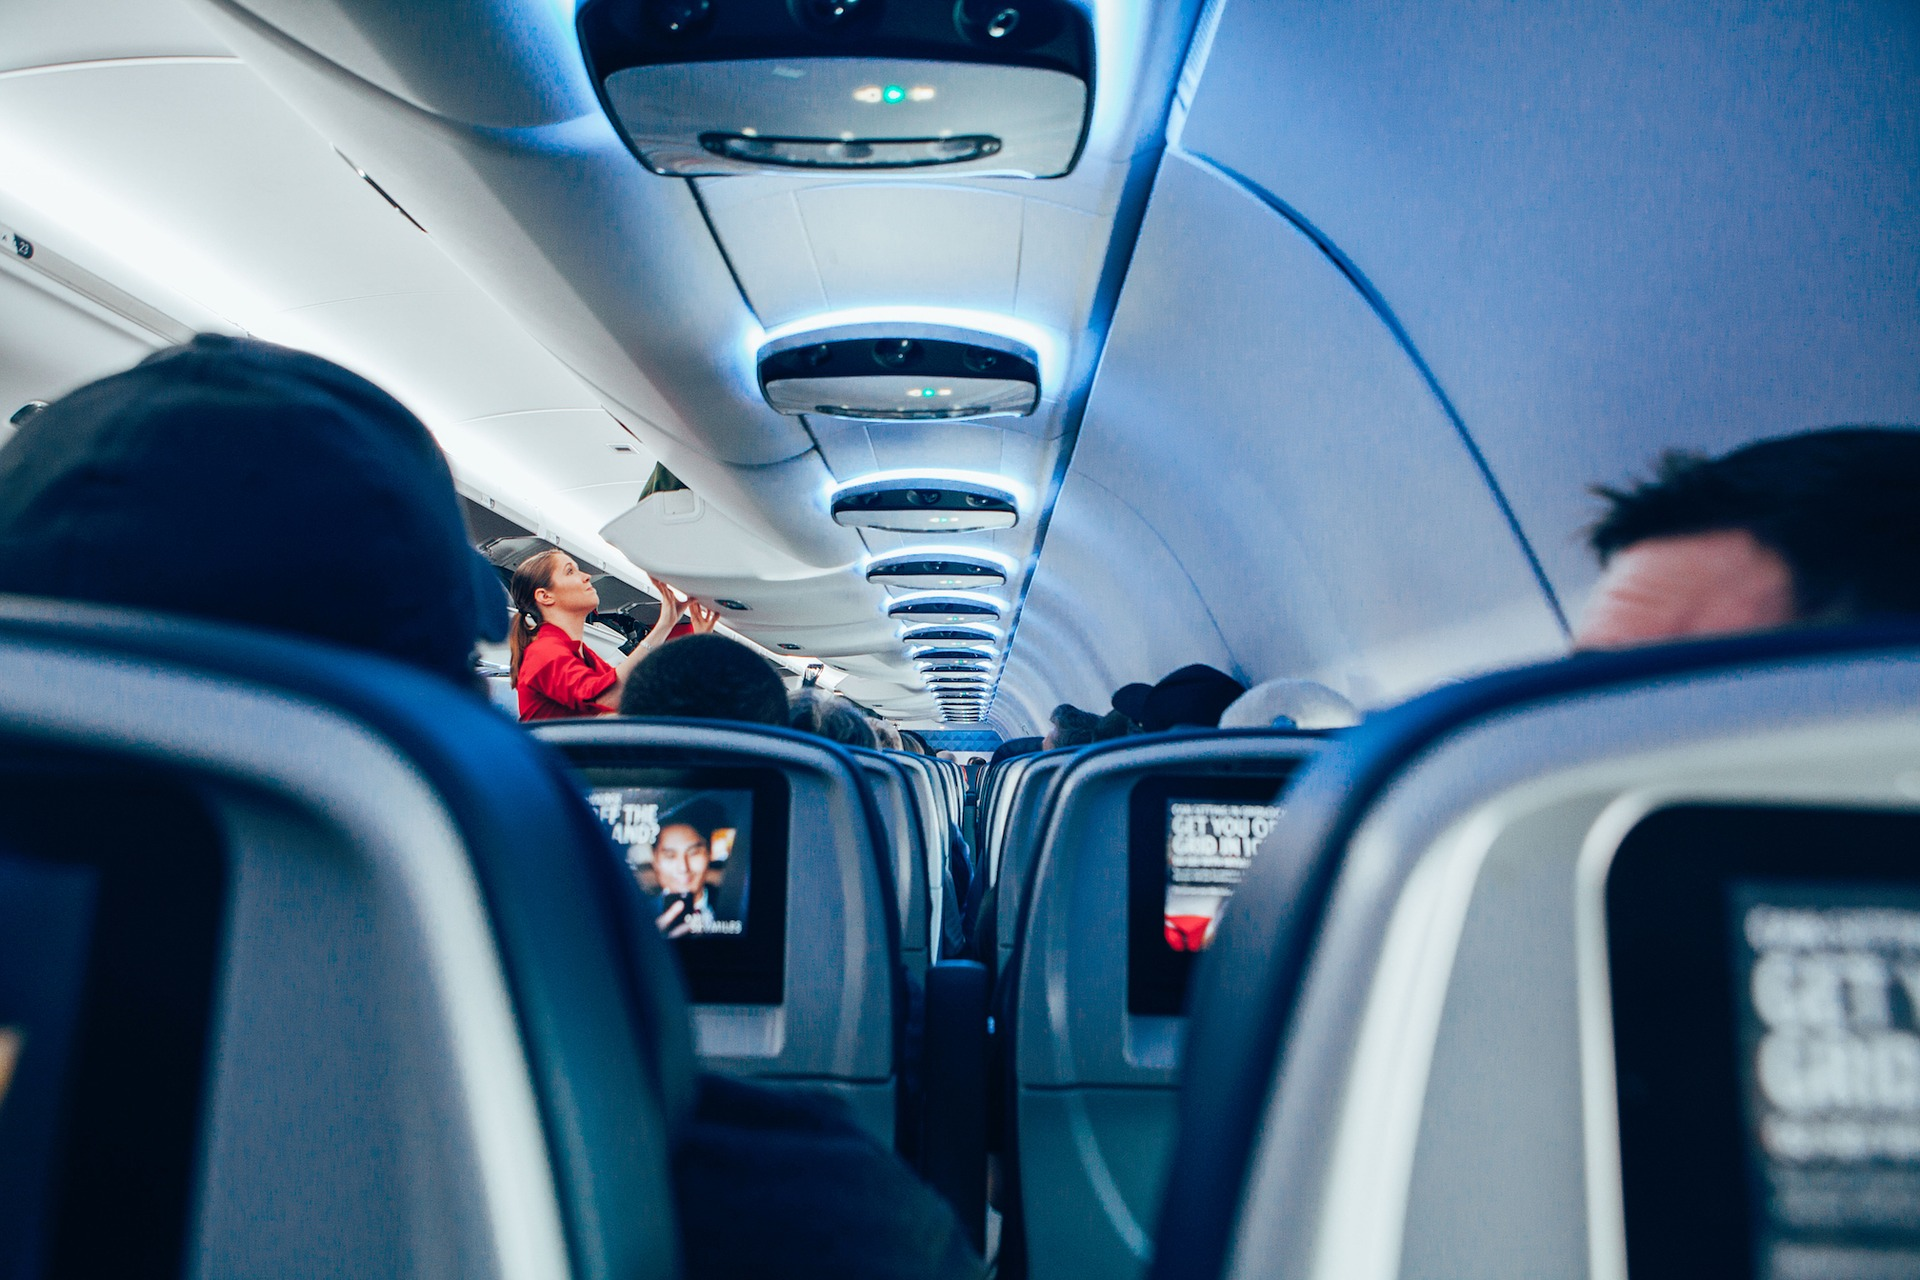 Passenger bumping at lowest rate since 1995: report